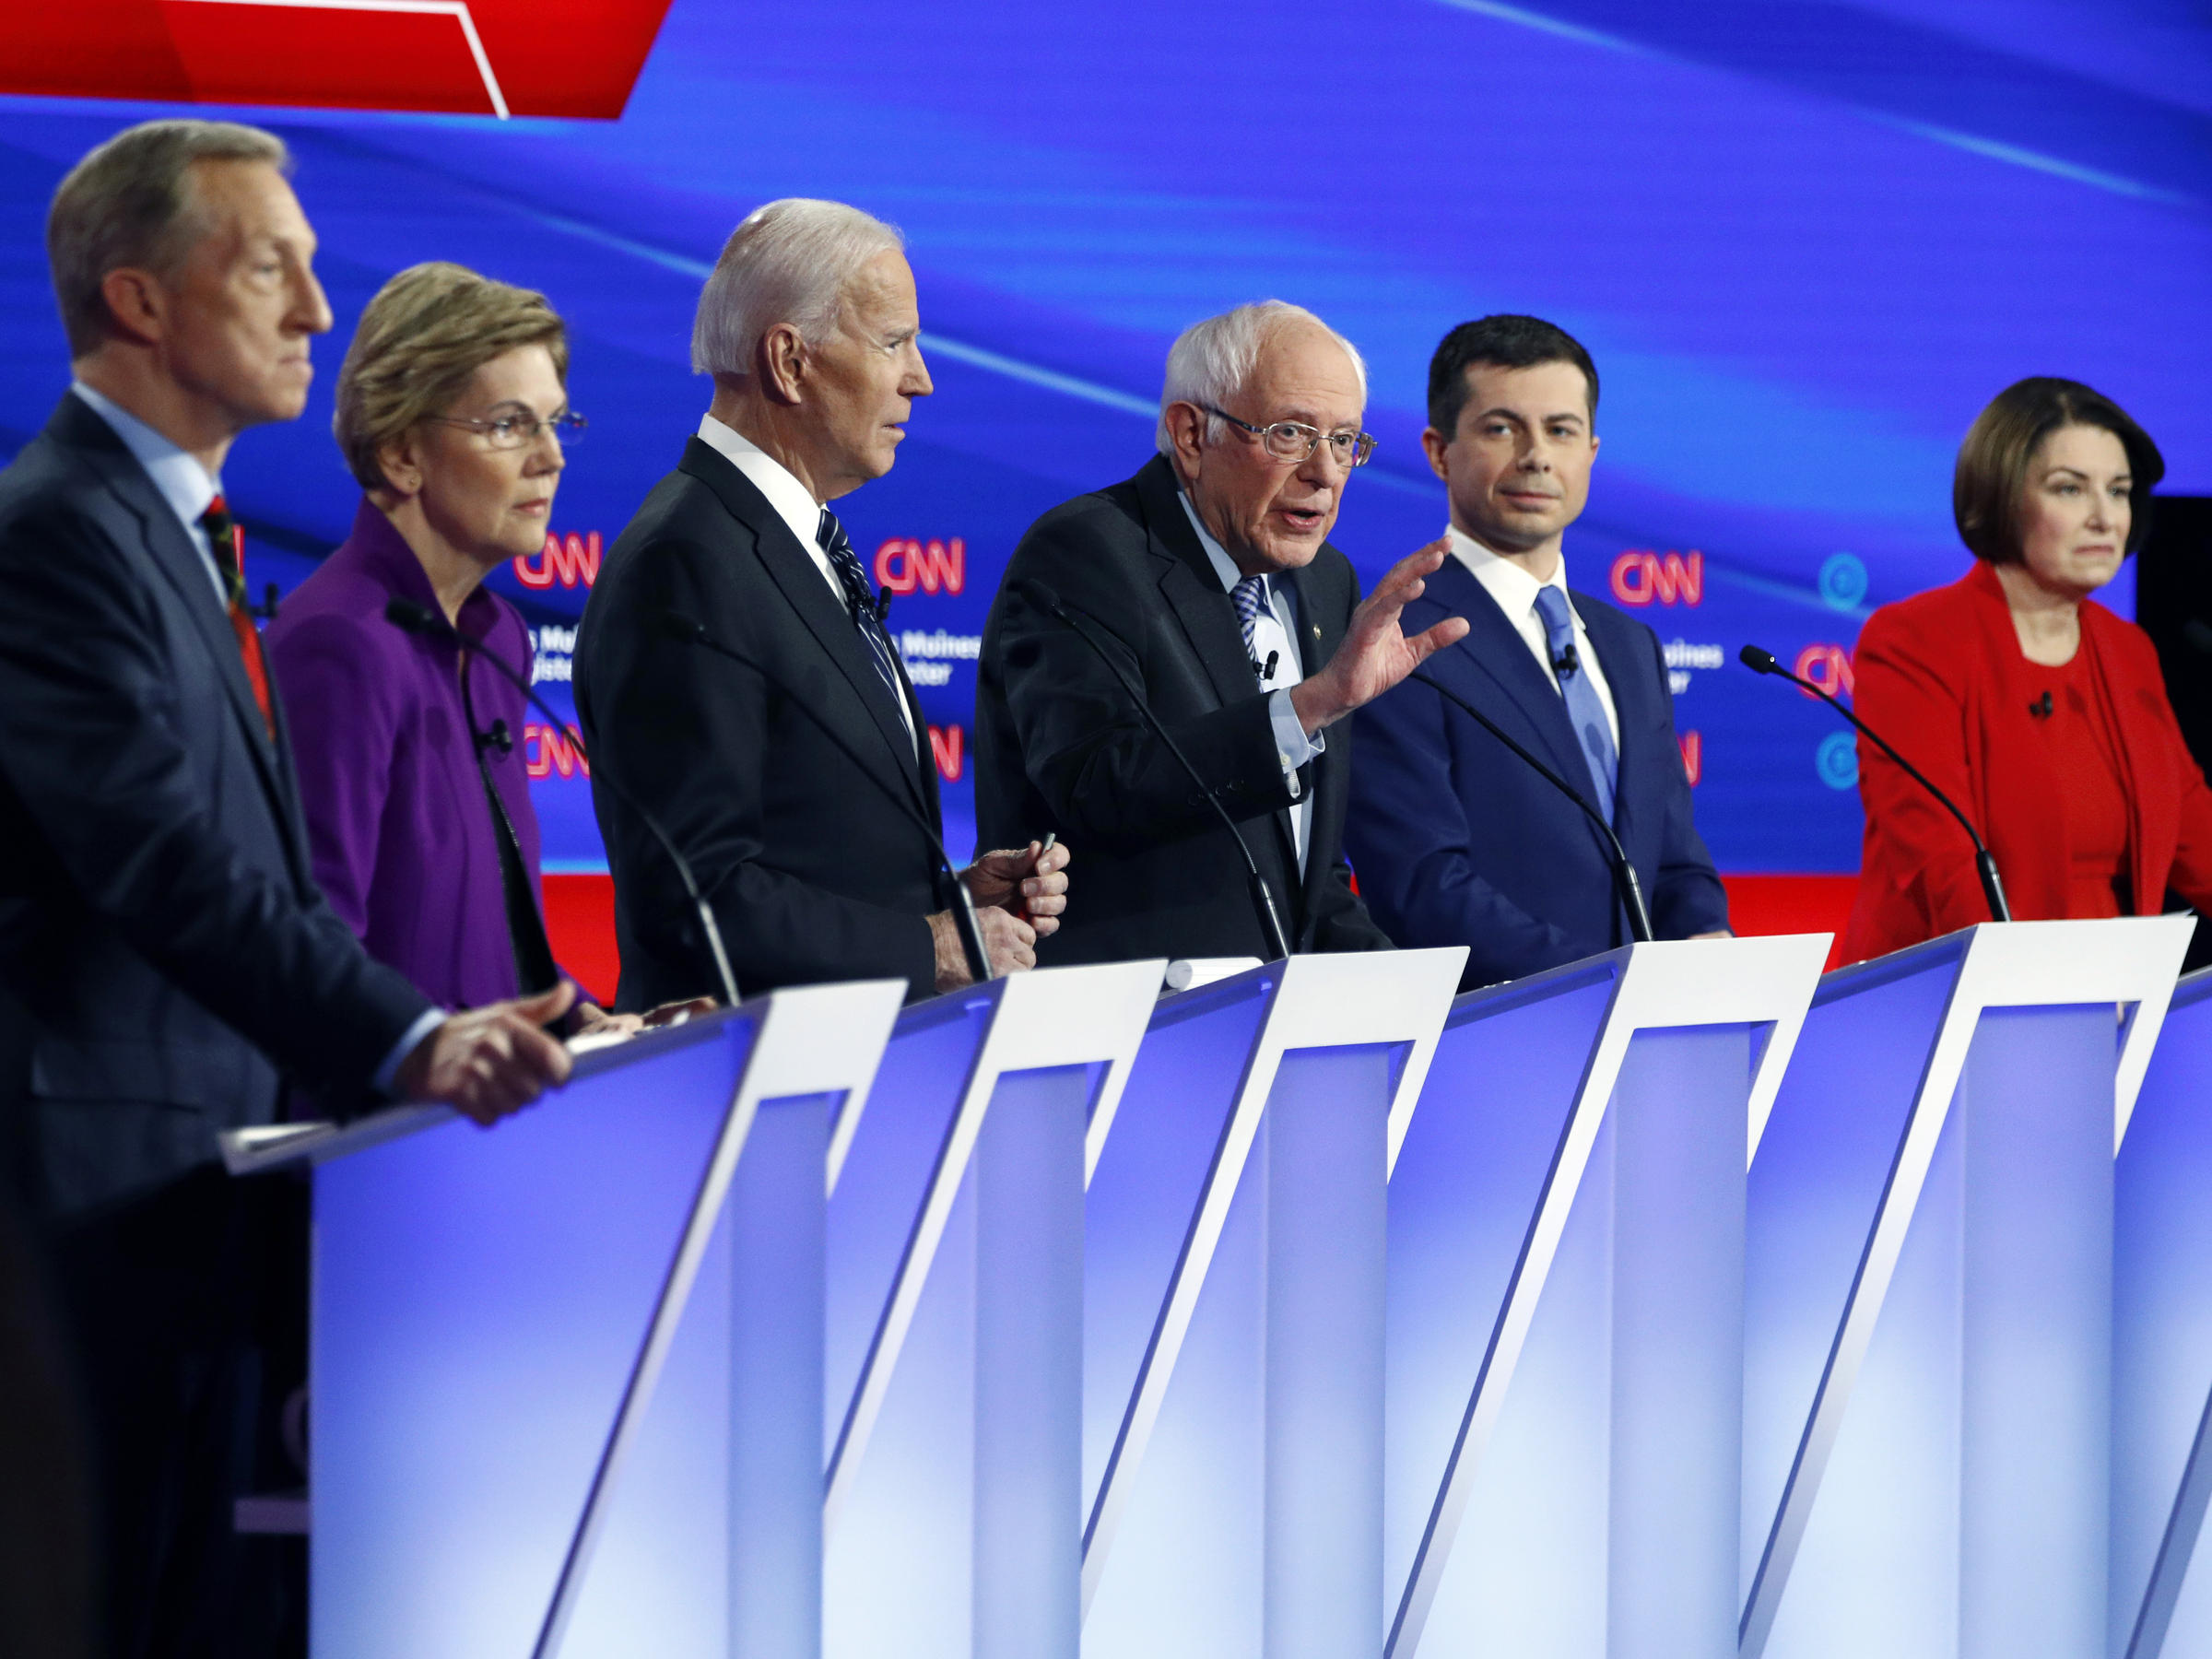 Democrats debate ahead of New Hampshire primary as Bloomberg looms